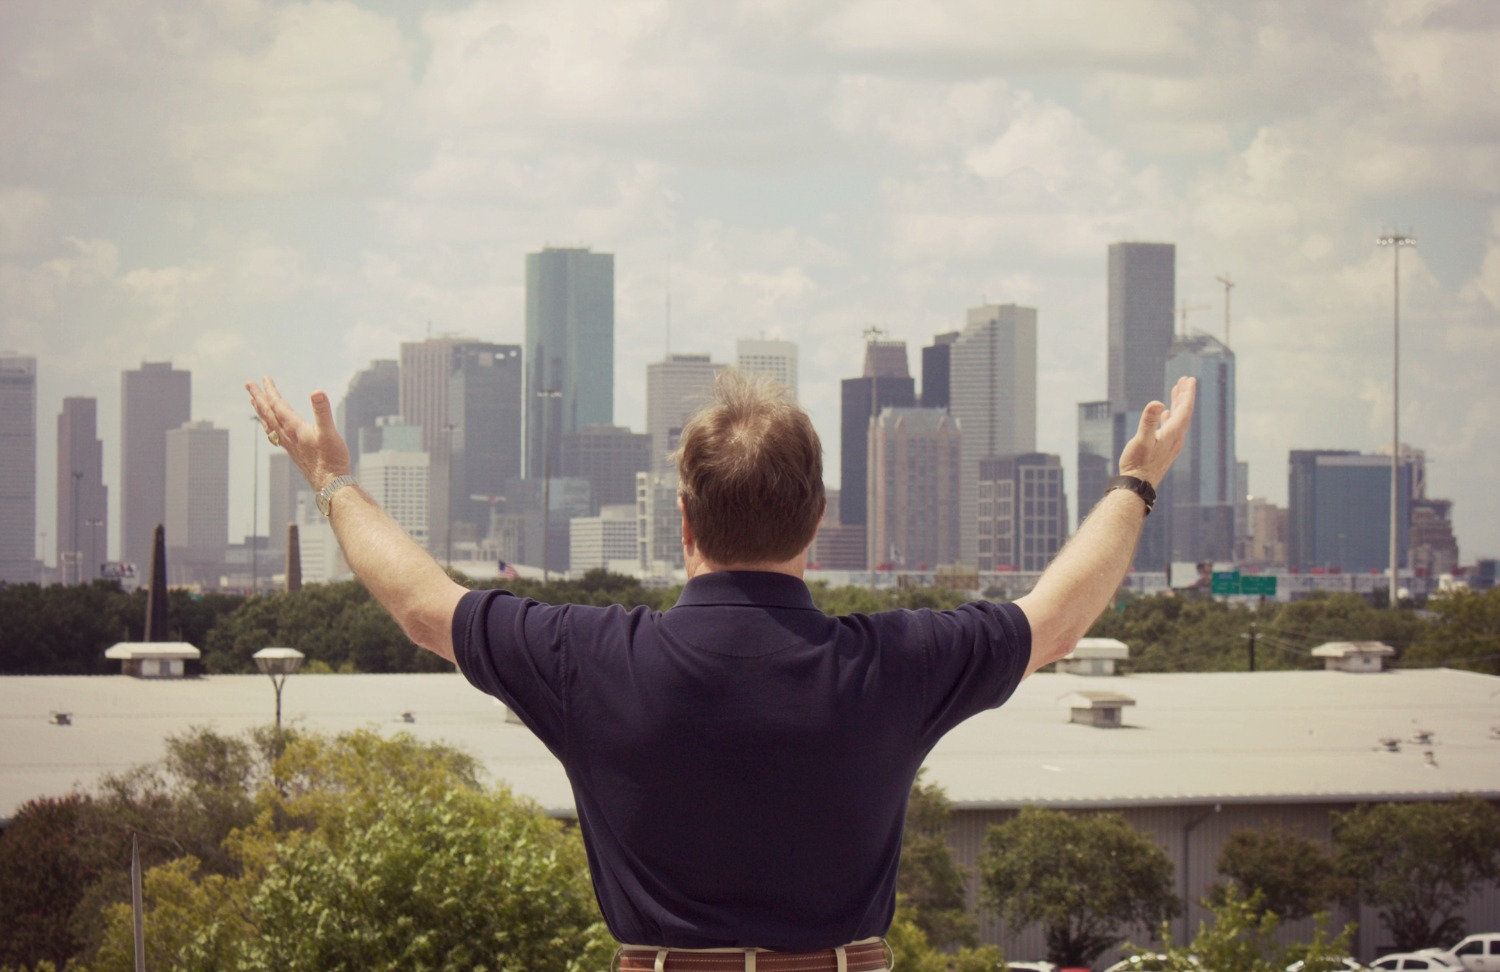 Houston Public Media's Paul Pendergraft is retiring after some 30 years in radio, including 20 at KUHF/News 88.7. He's pictured atop the Melcher Center for Public Broadcasting on the University of Houston campus. (Photo: Mark DiClaudio, Houston Public Media)